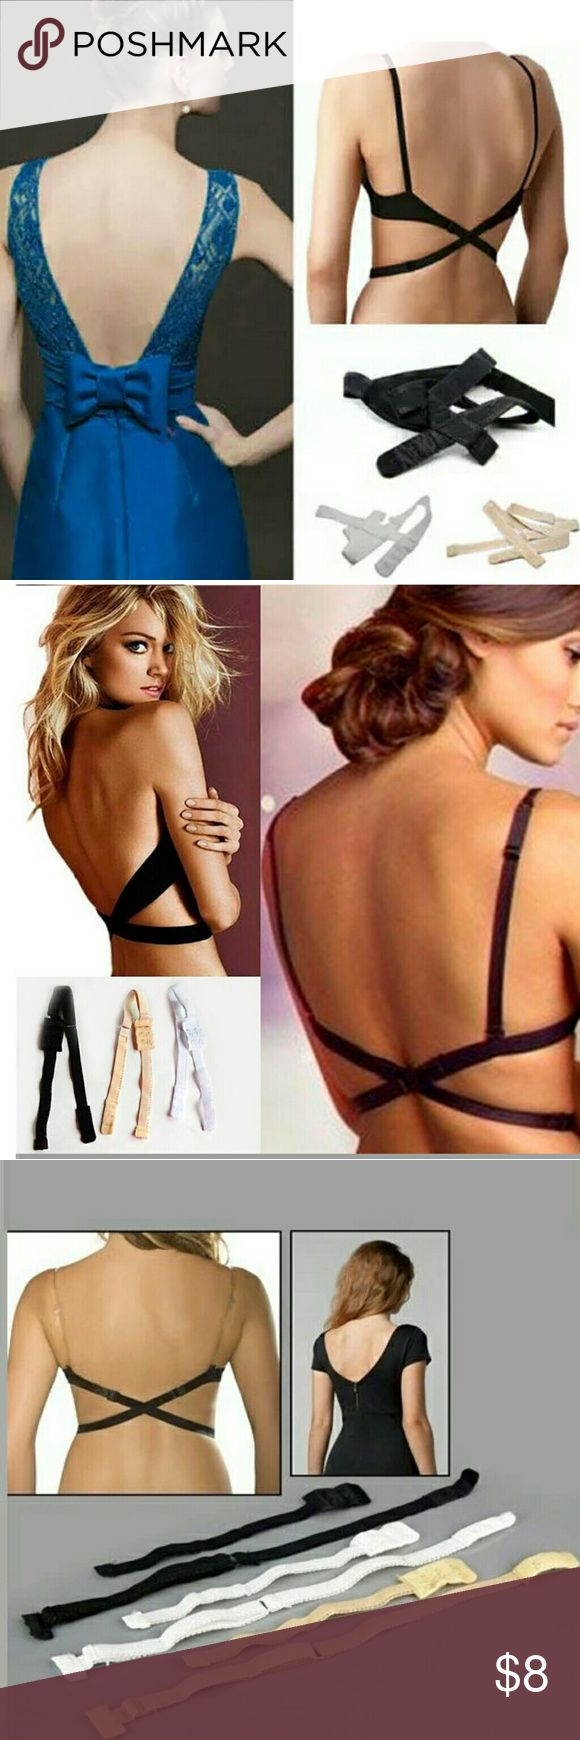 Low Back Backless Bra Strap Extender A perfect solution for your low back tops and summer dress.  Fully adjustable bra adapter strap, simply attach it to the bra, cross over behind and fasten the strap in the front.  Can be attached to any bra and fully adjustable  Condition: 100% Brand New  Available Color: Black, White, Beige Accessories